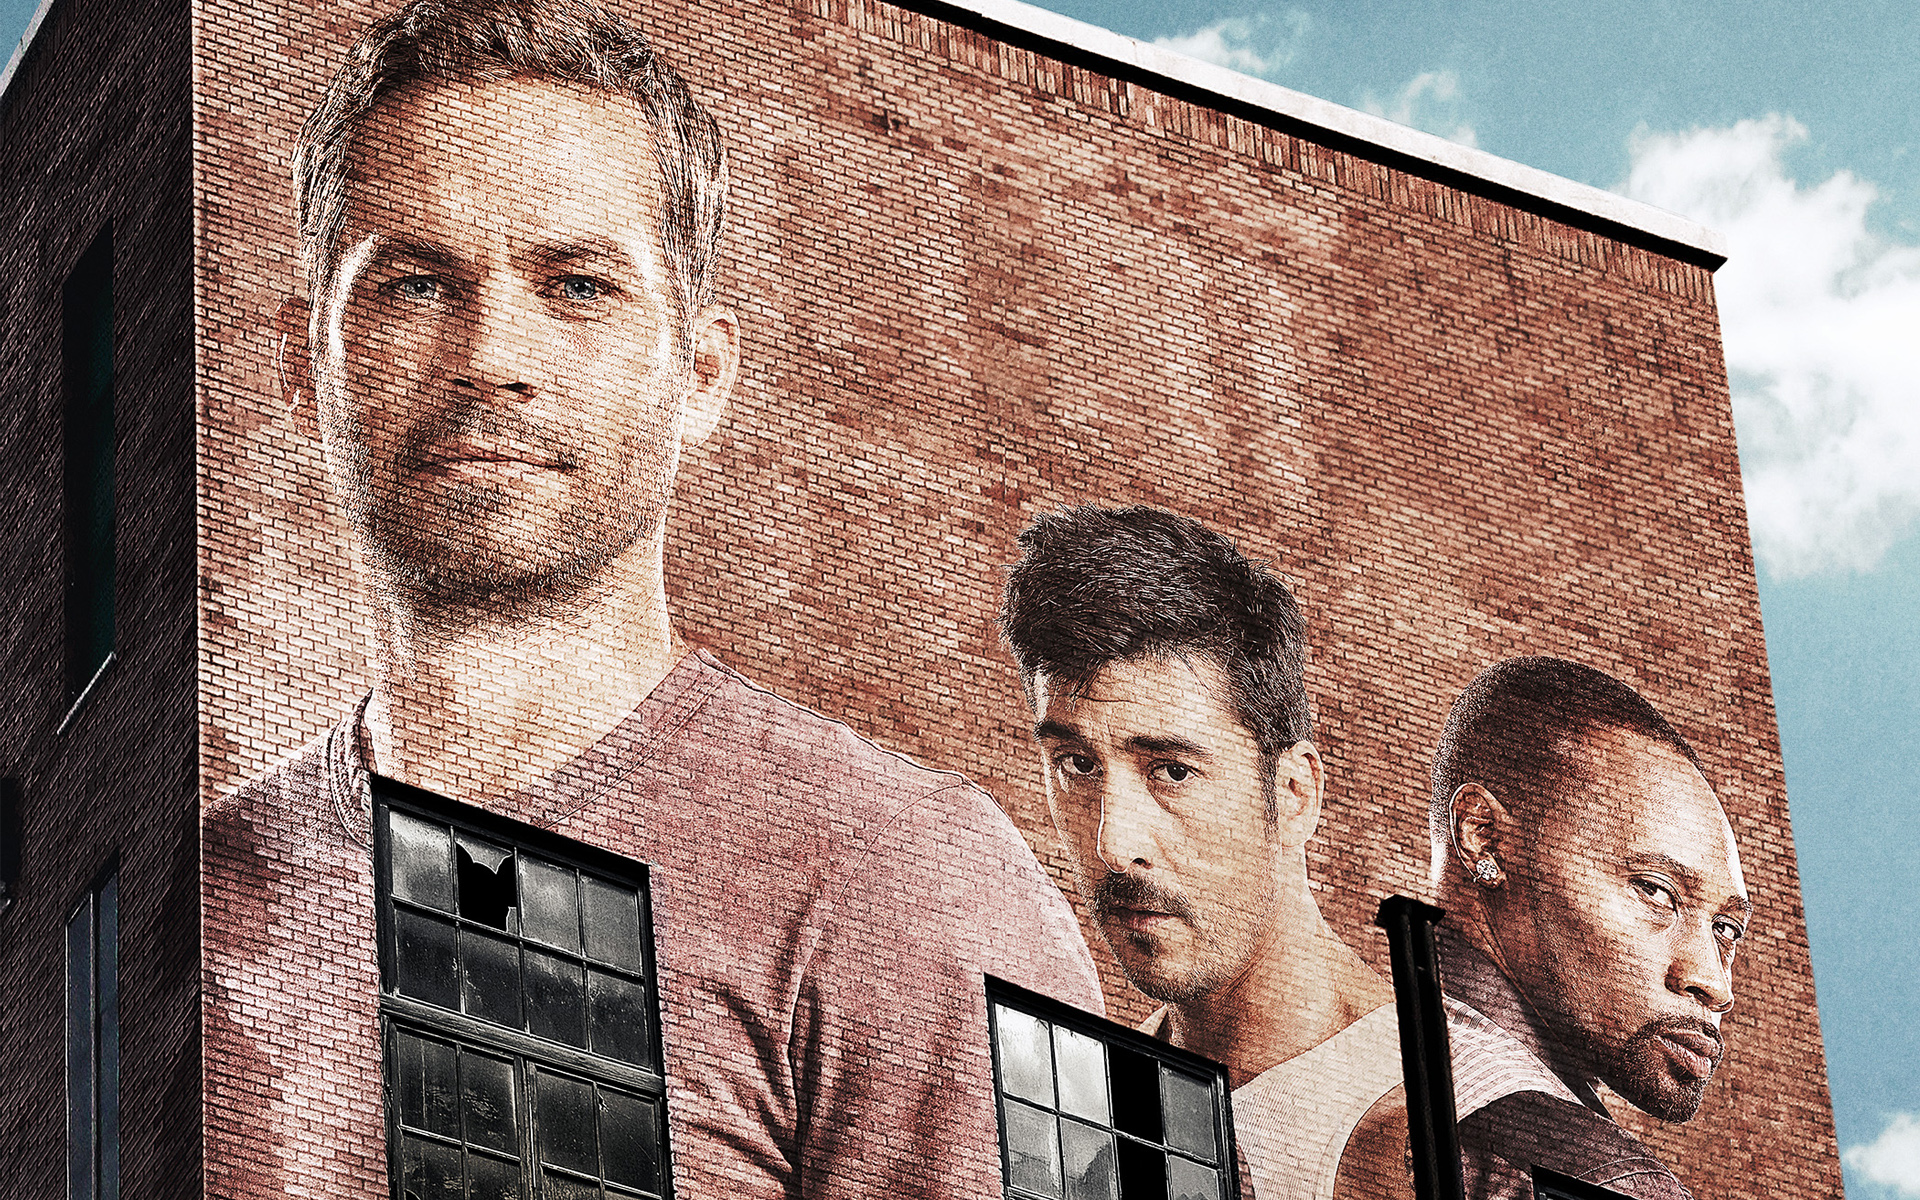 Paul Walker's Brick Mansions 1657.02 Kb